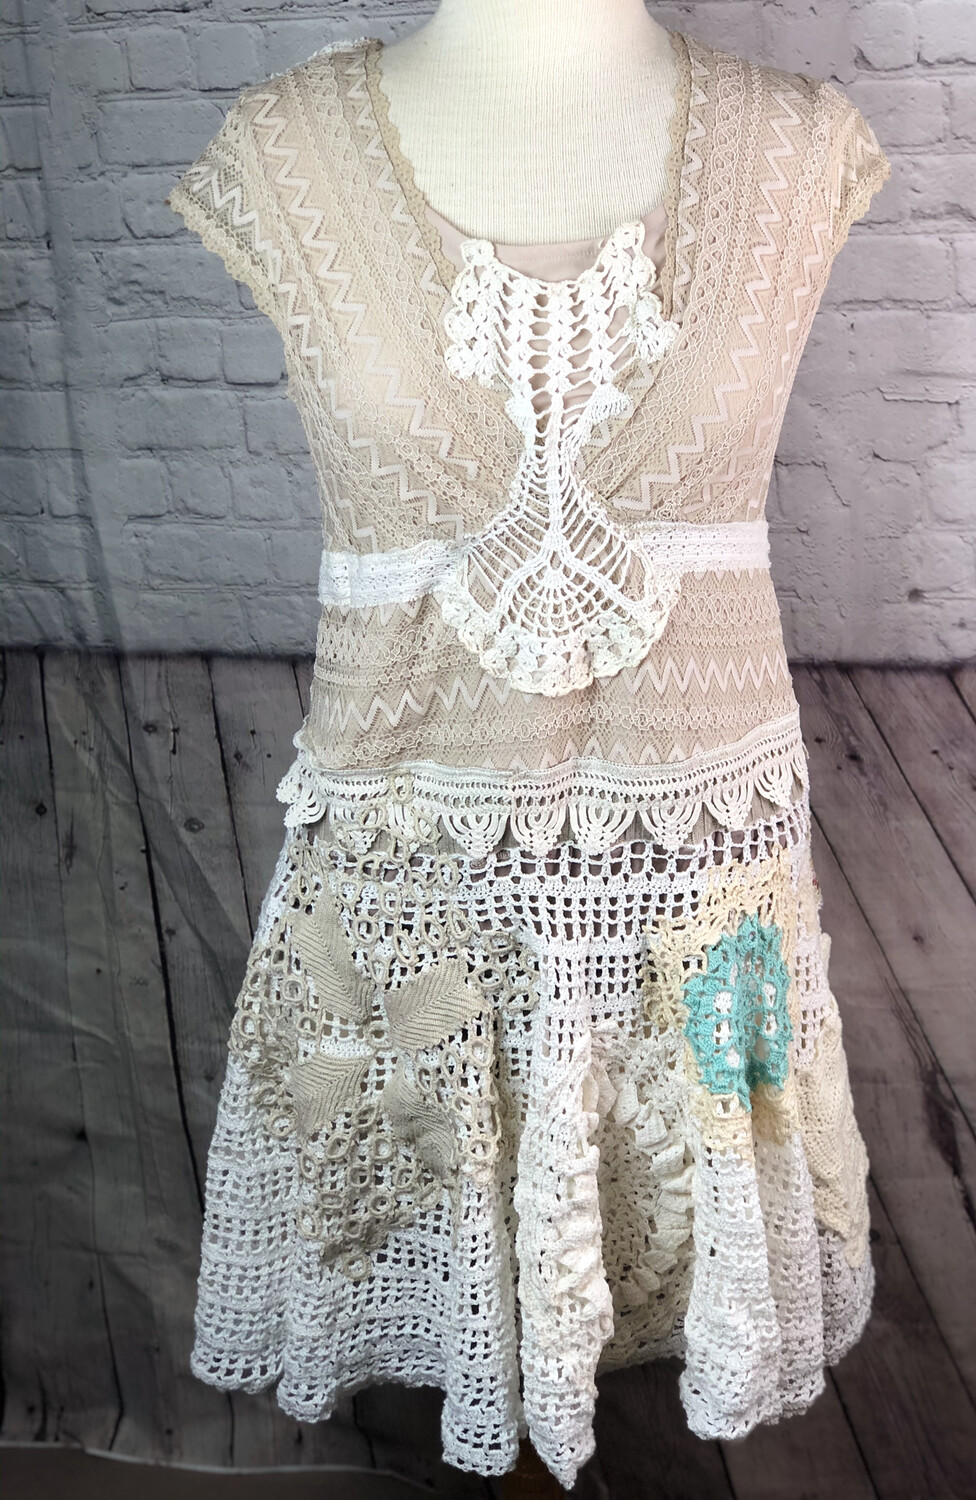 Romantic Shabby Chic Crocheted Upcycled S Threads Doily Dress Wearable Art Boho Repurposed Sustainable Vintage Lace Size Medium